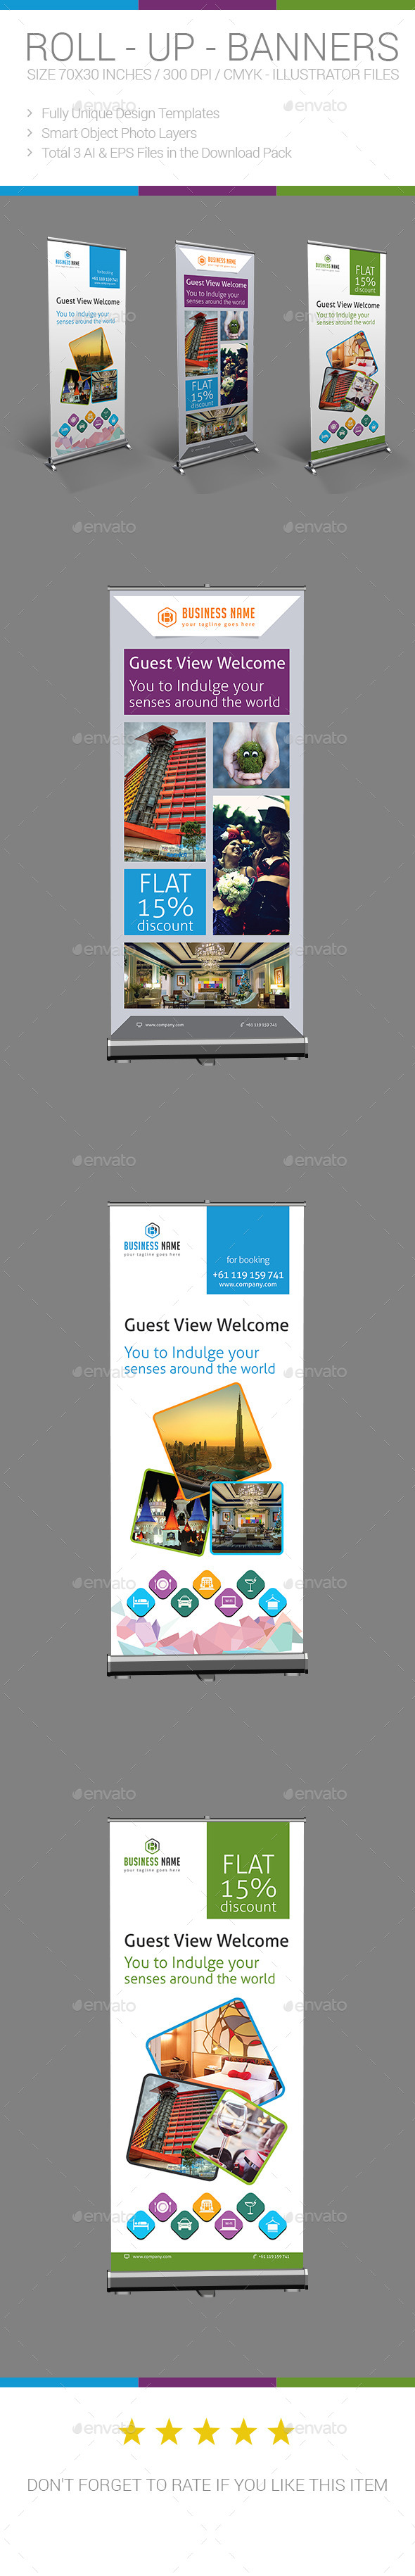 Hotel / Travel Roll-up Banner - Signage Print Templates